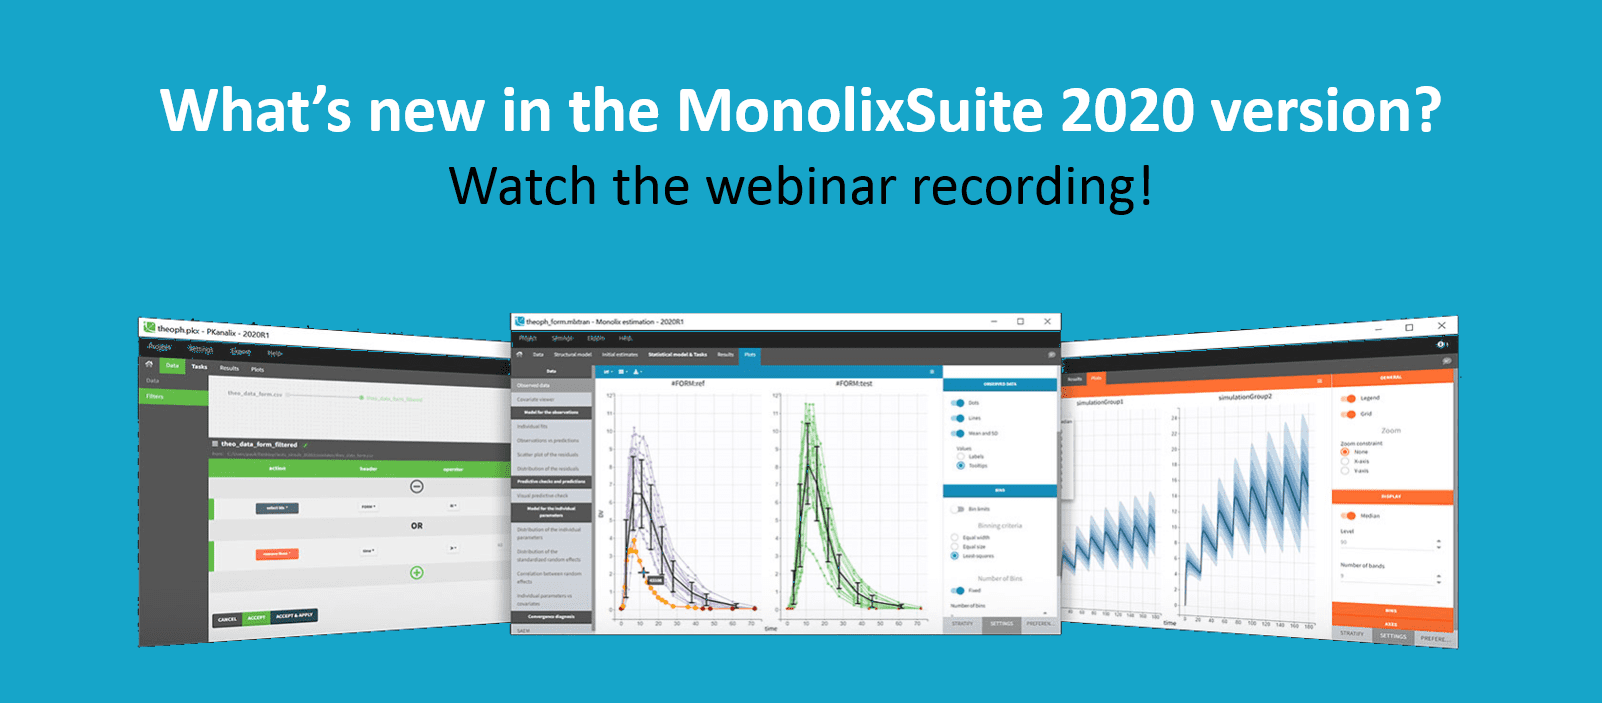 What's new in the MonolixSuite 2020